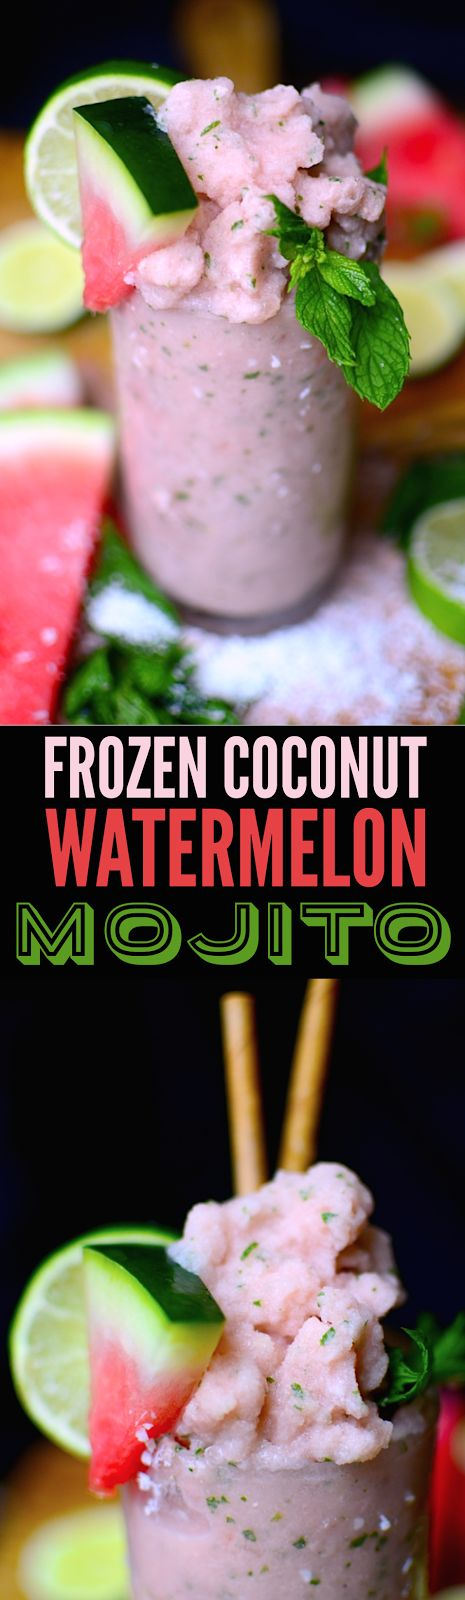 This is so refreshing on a hot summer day! THE mixed drink for summer: mint, lime, coconut cream, and frozen watermelon with coconut rum (great virgin too!)